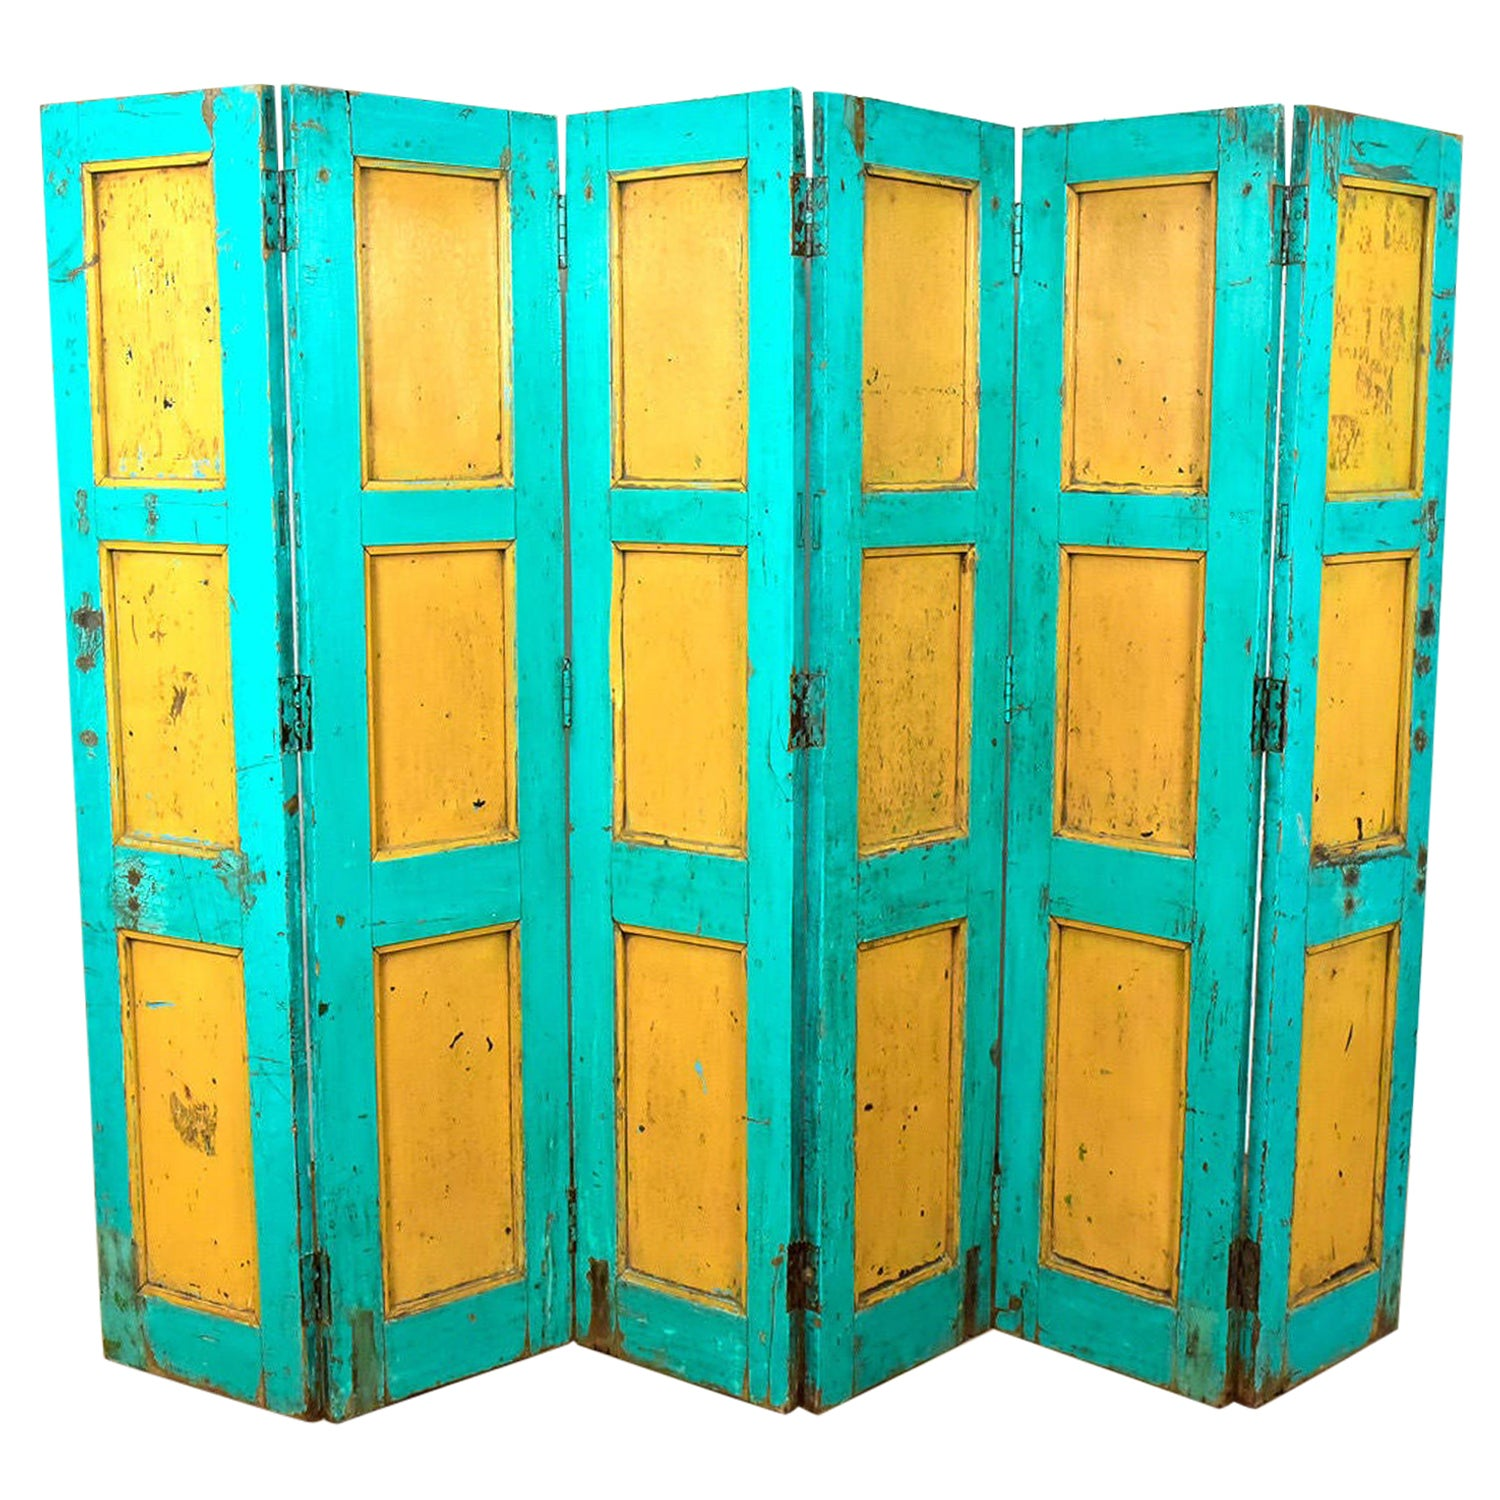 Reclaimed Room Divider / Panelling, 20th Century